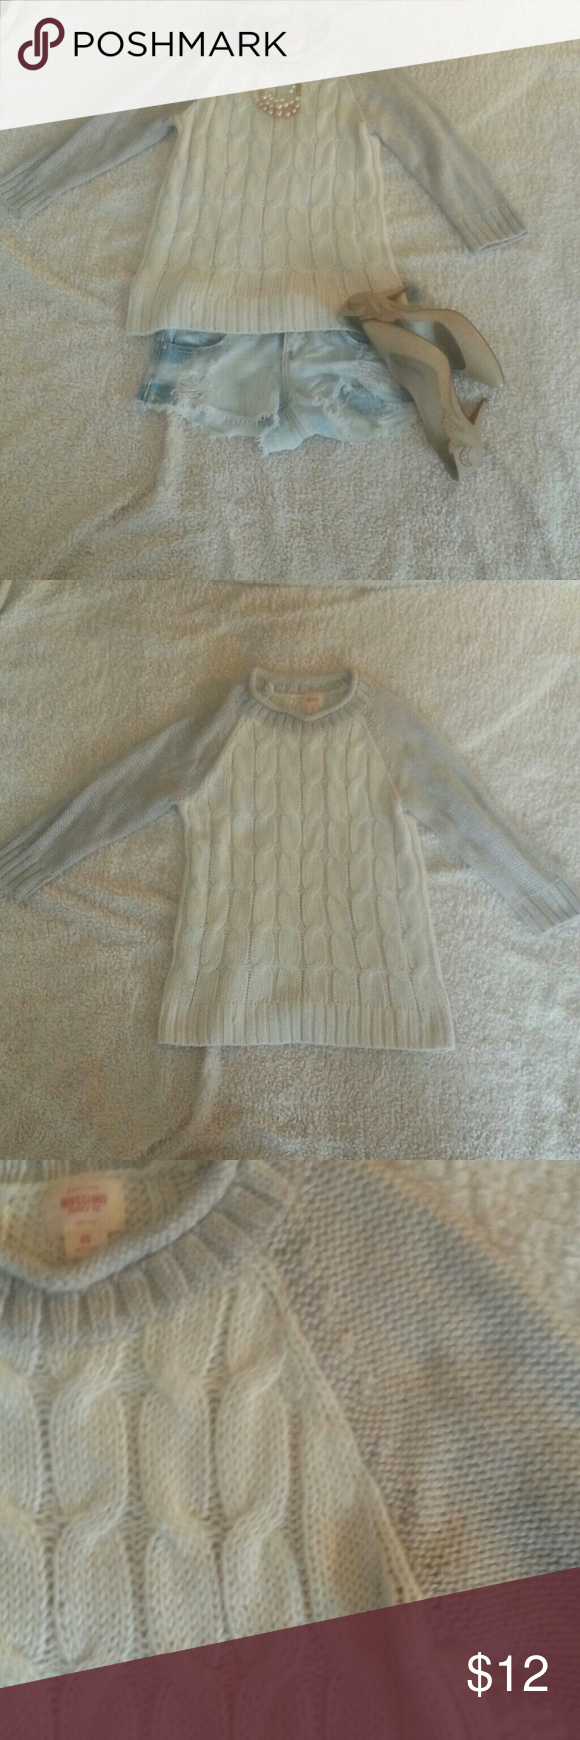 *2 for 10.00* Mossimo Cableknit Sweater Part of 2 for 10.00 sale. Choose two of any 2 for 10 items and pay just 10.00!  Great condition  *SALE PRICE IS FIRM* Mossimo Supply Co Sweaters